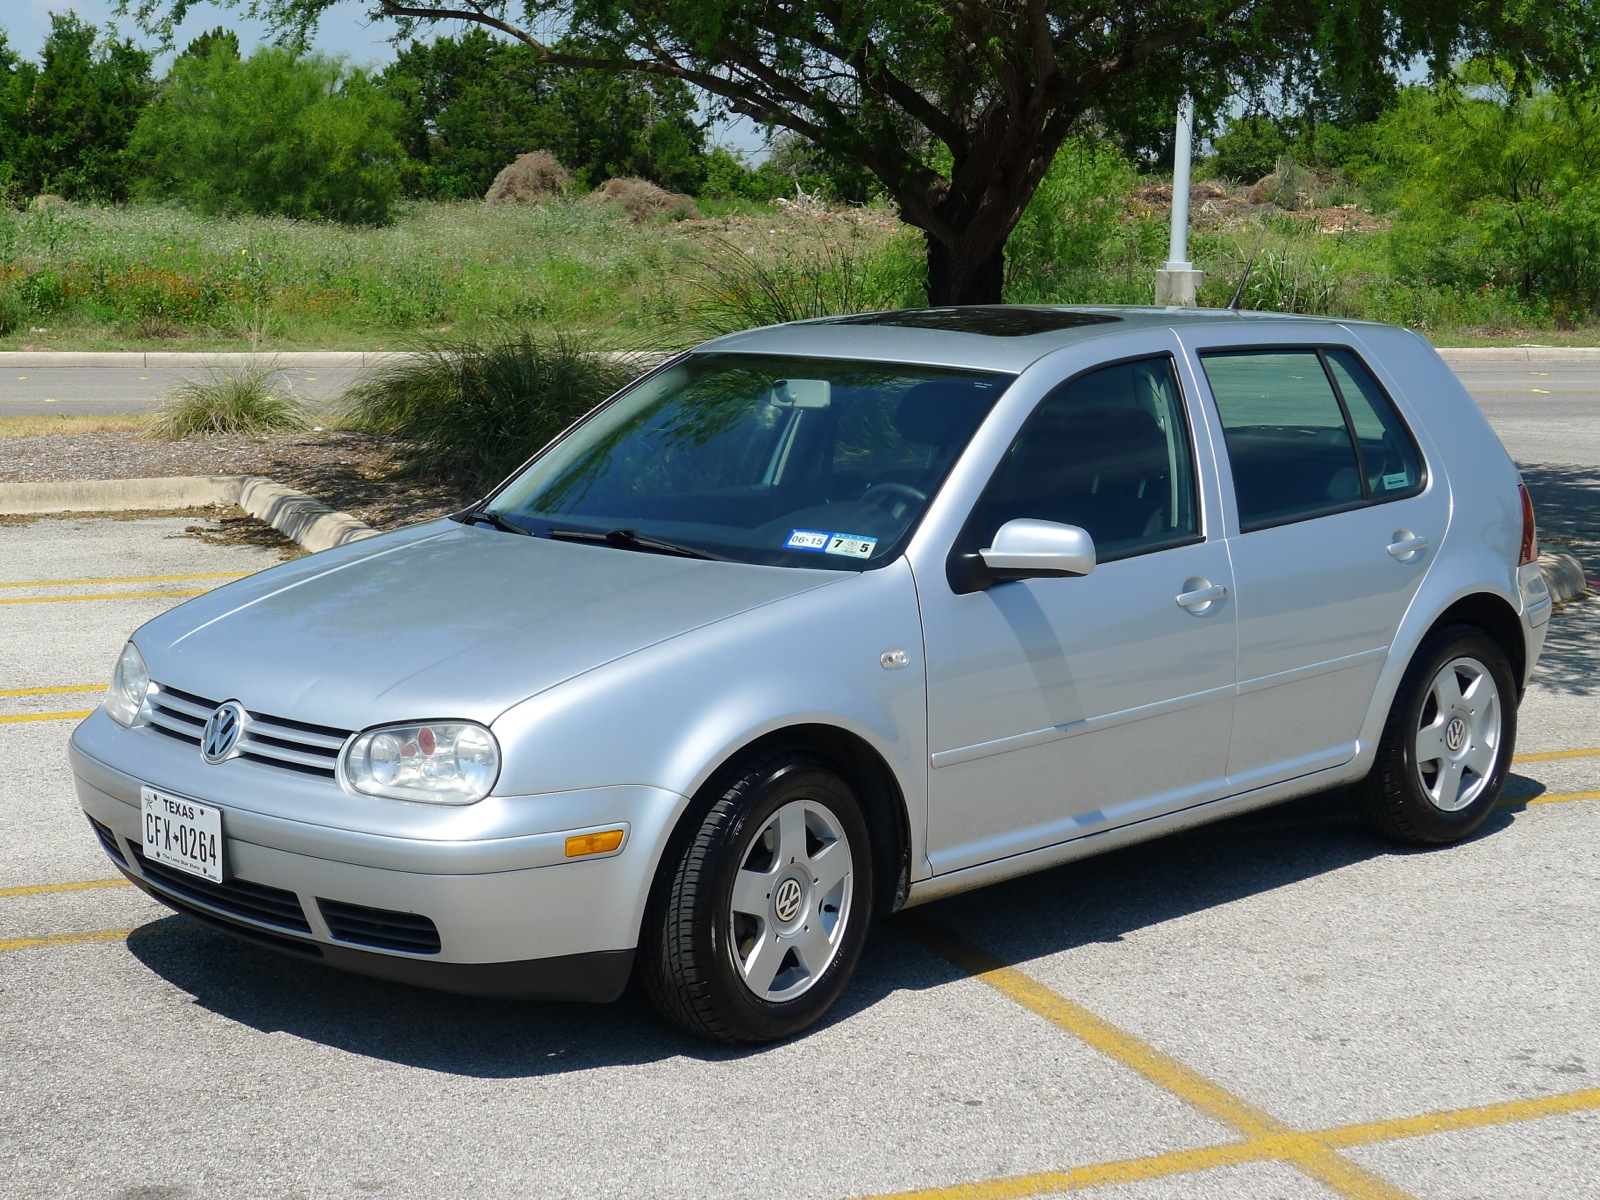 Sold 2002 Vw Golf Gls Tdi 5spd Pristine For Sale